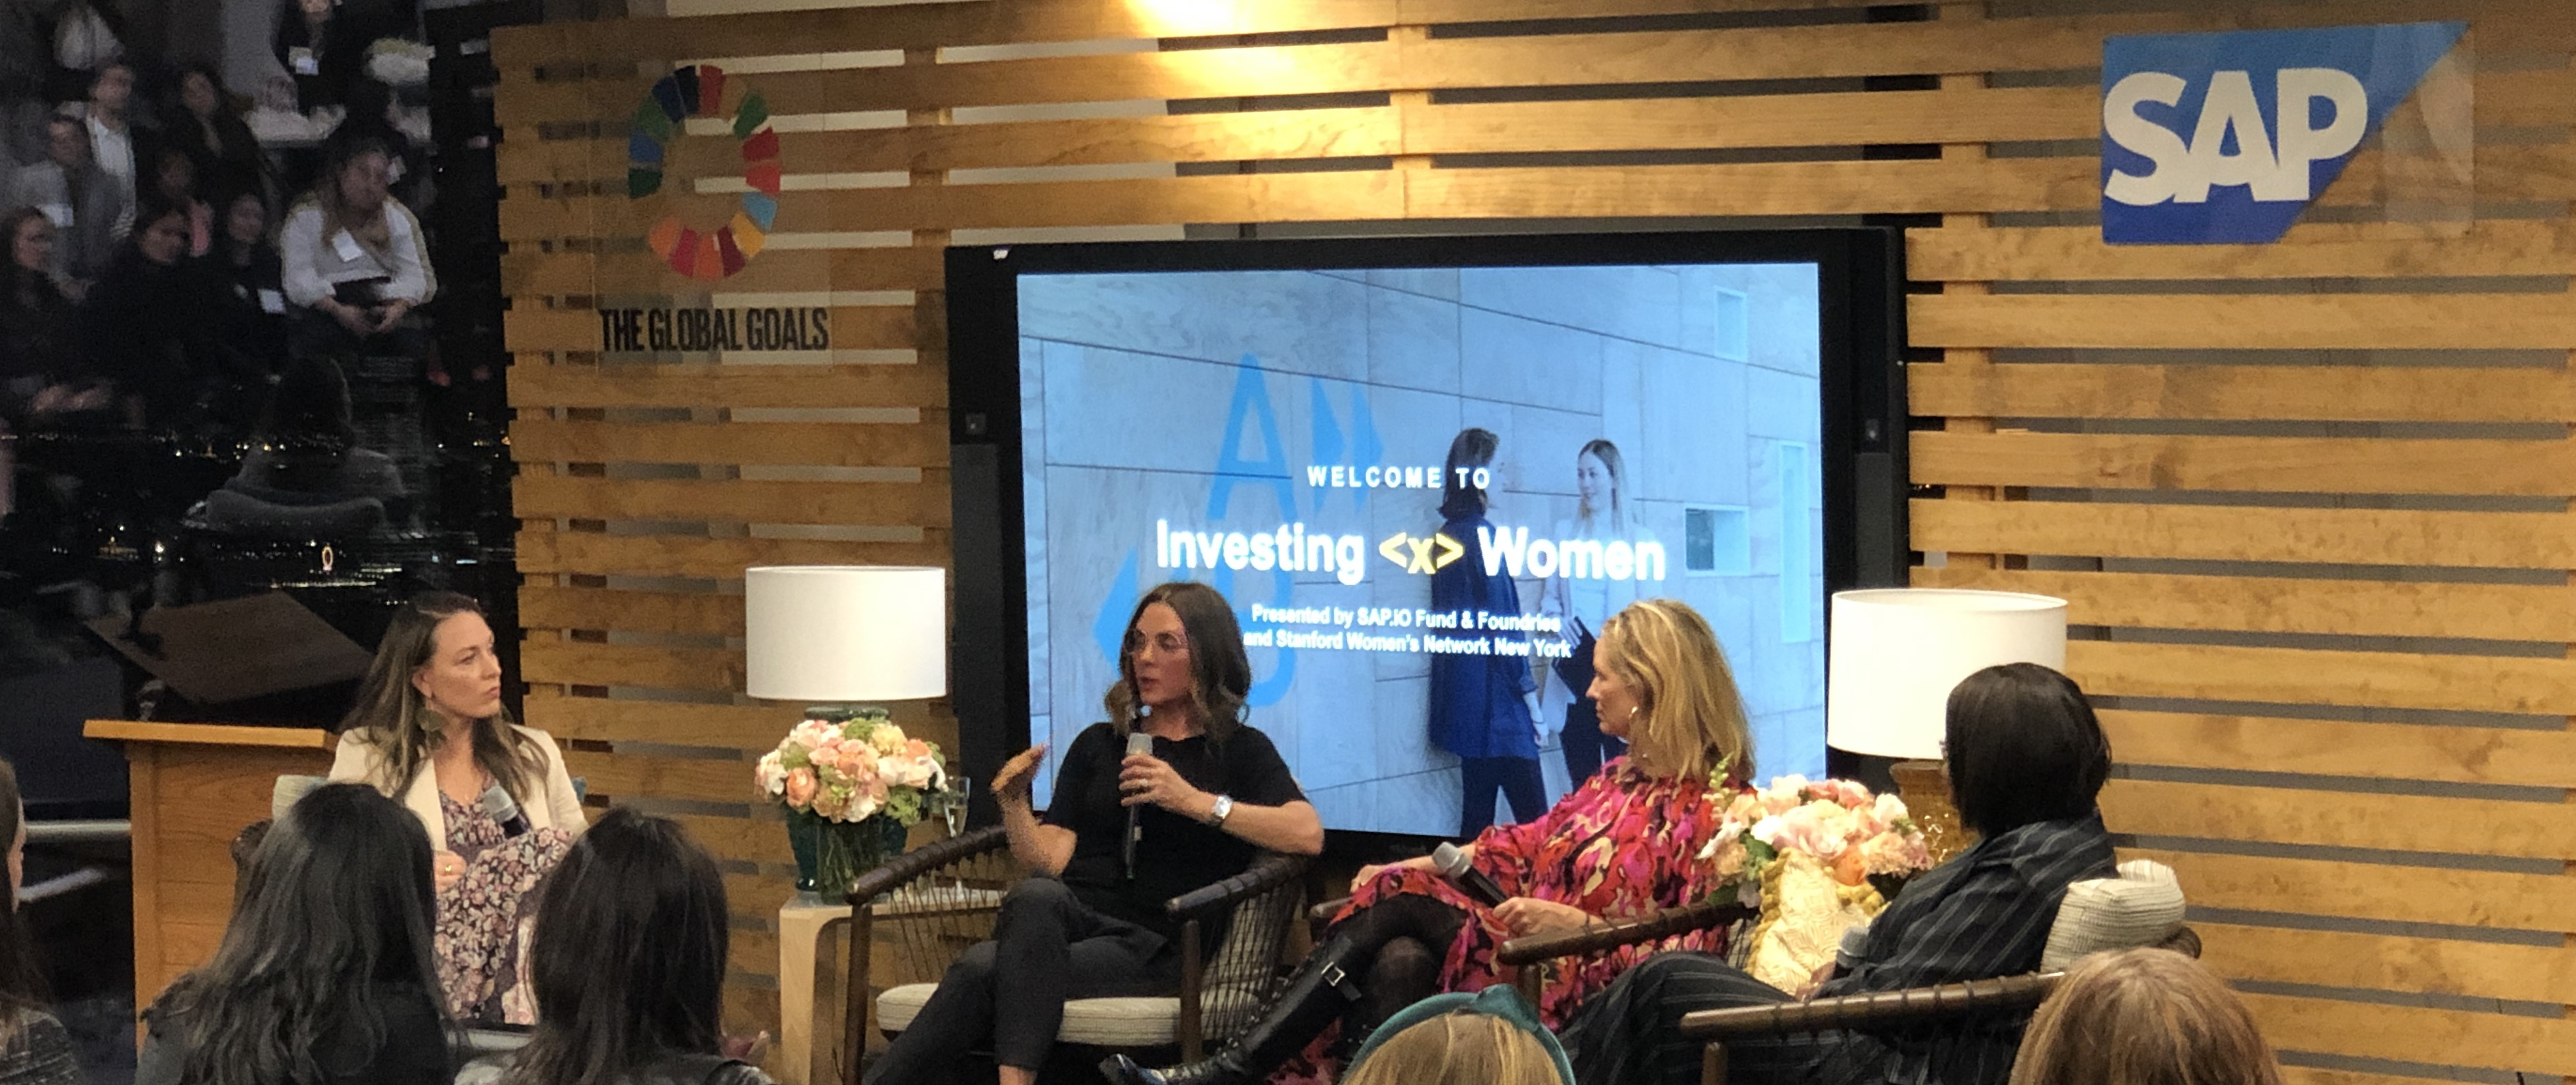 SAP.iO Hosts Investing x Women with Stanford Women's Network of New York